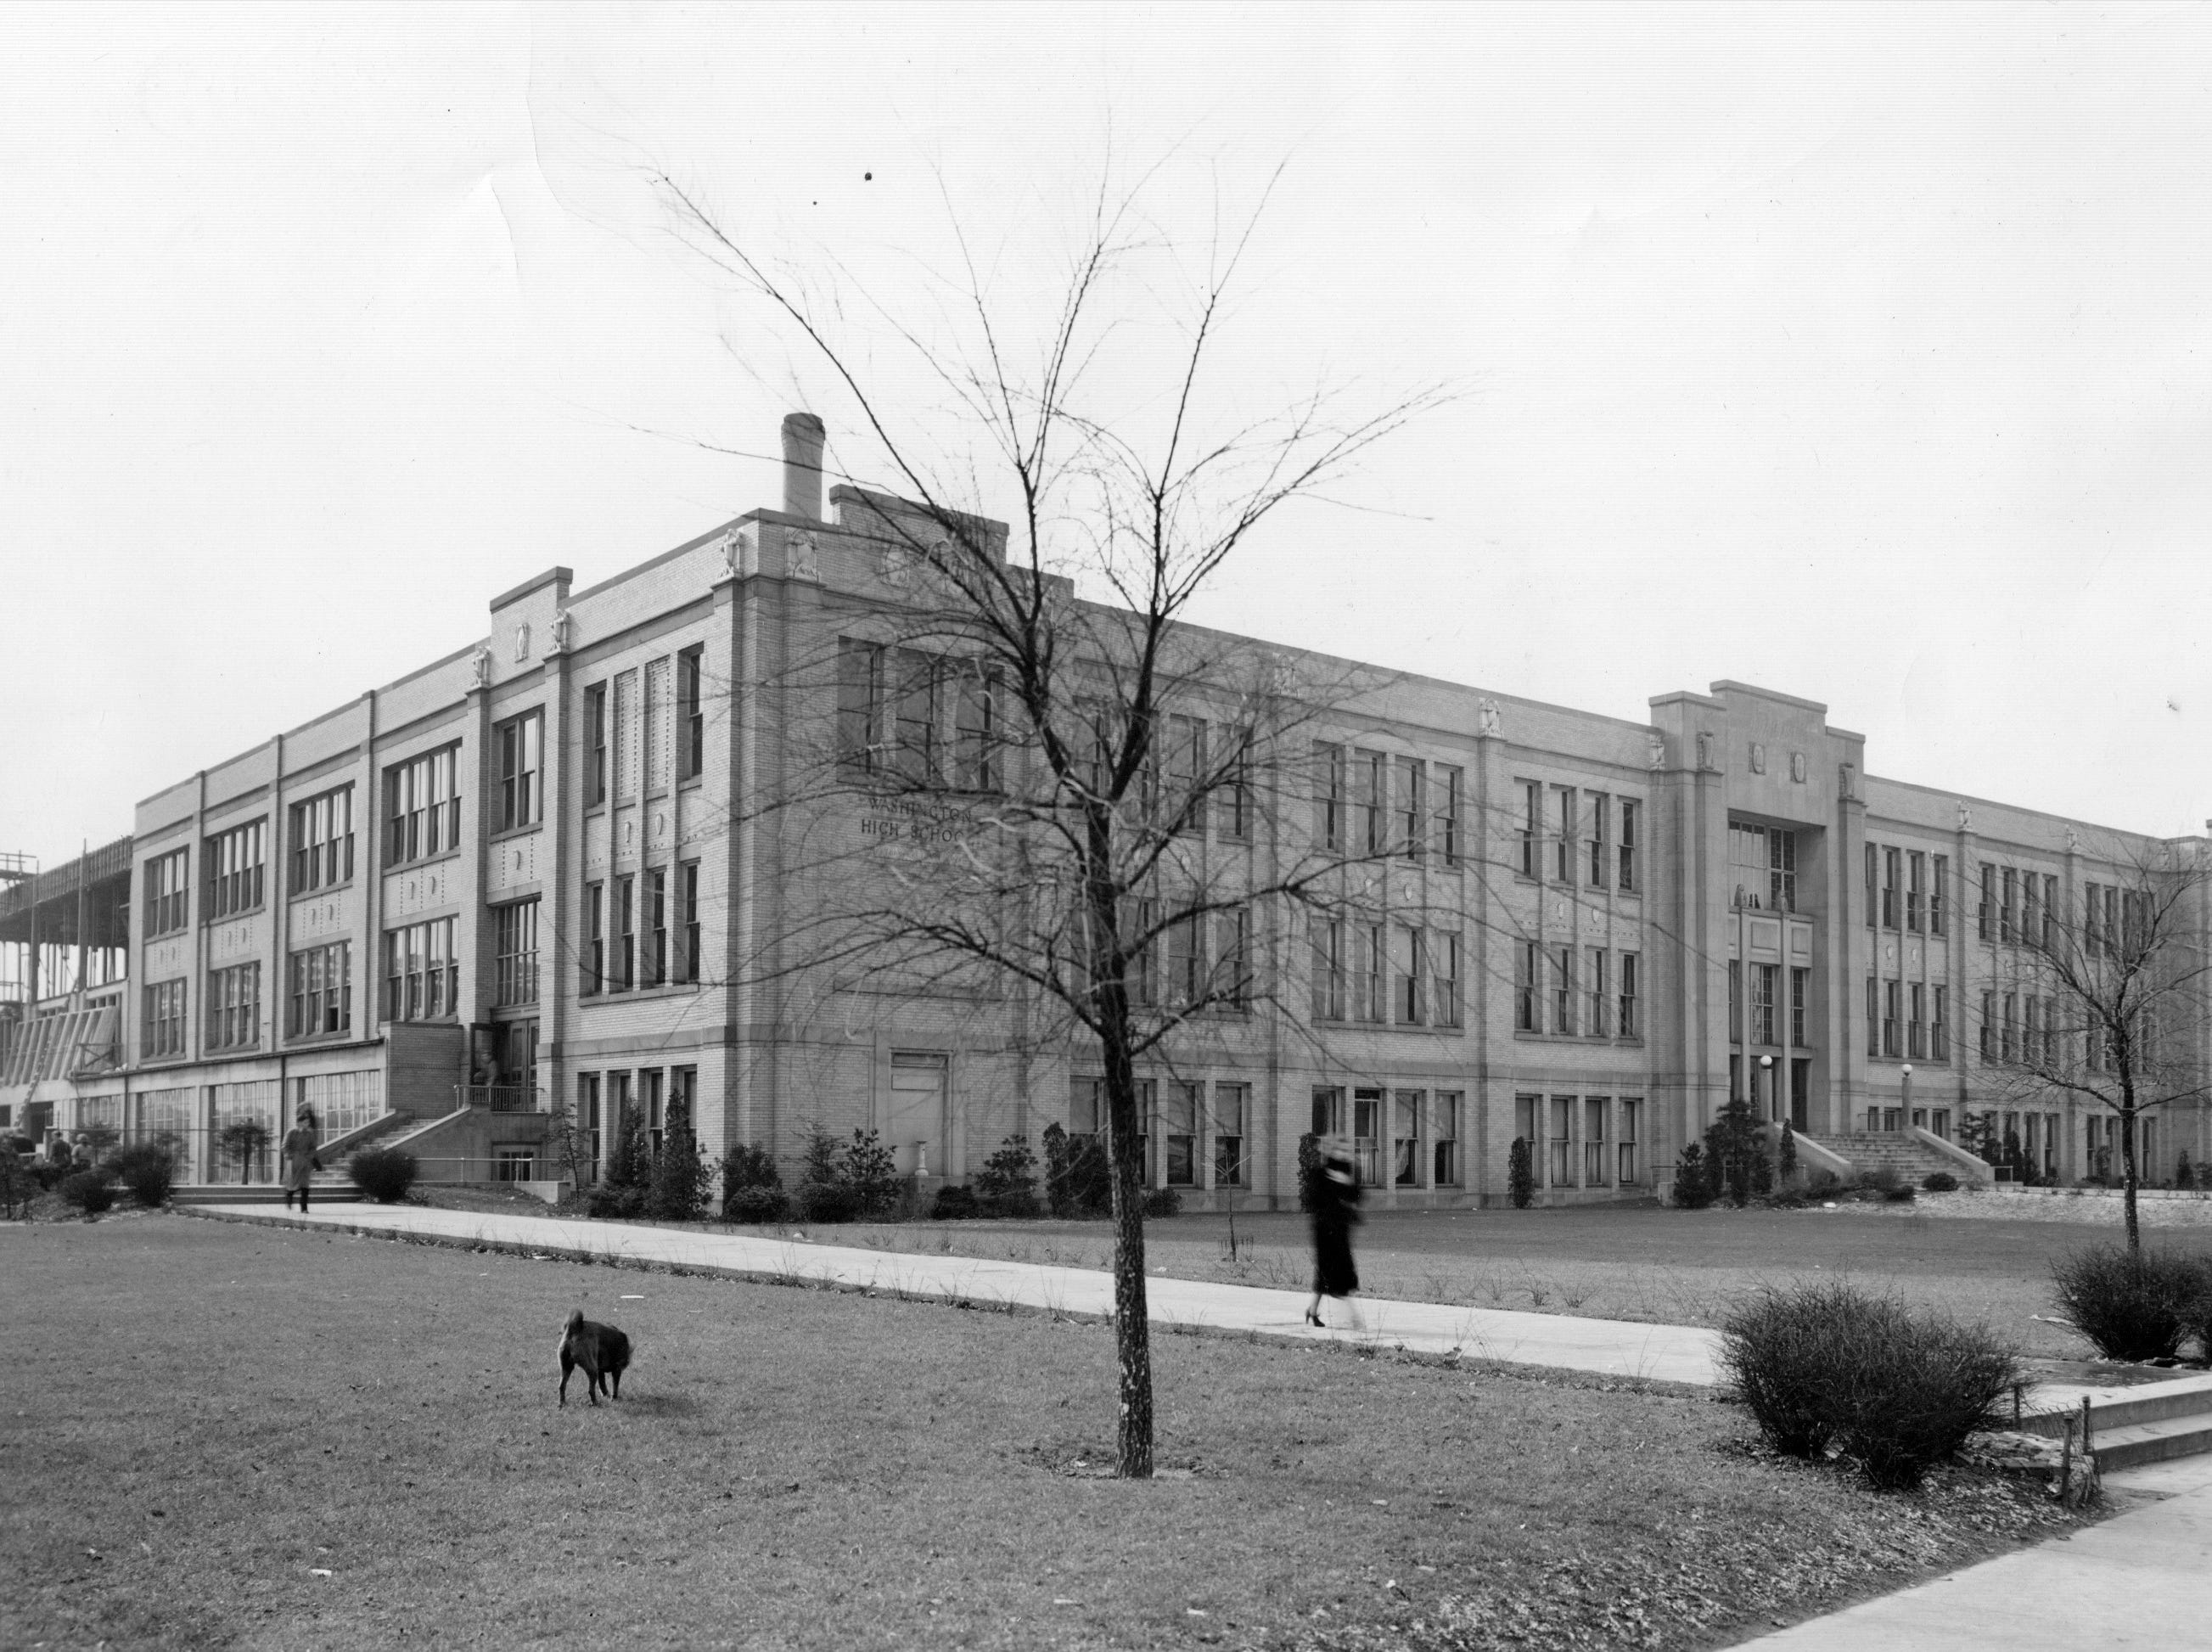 George Washington High School in December 1937.